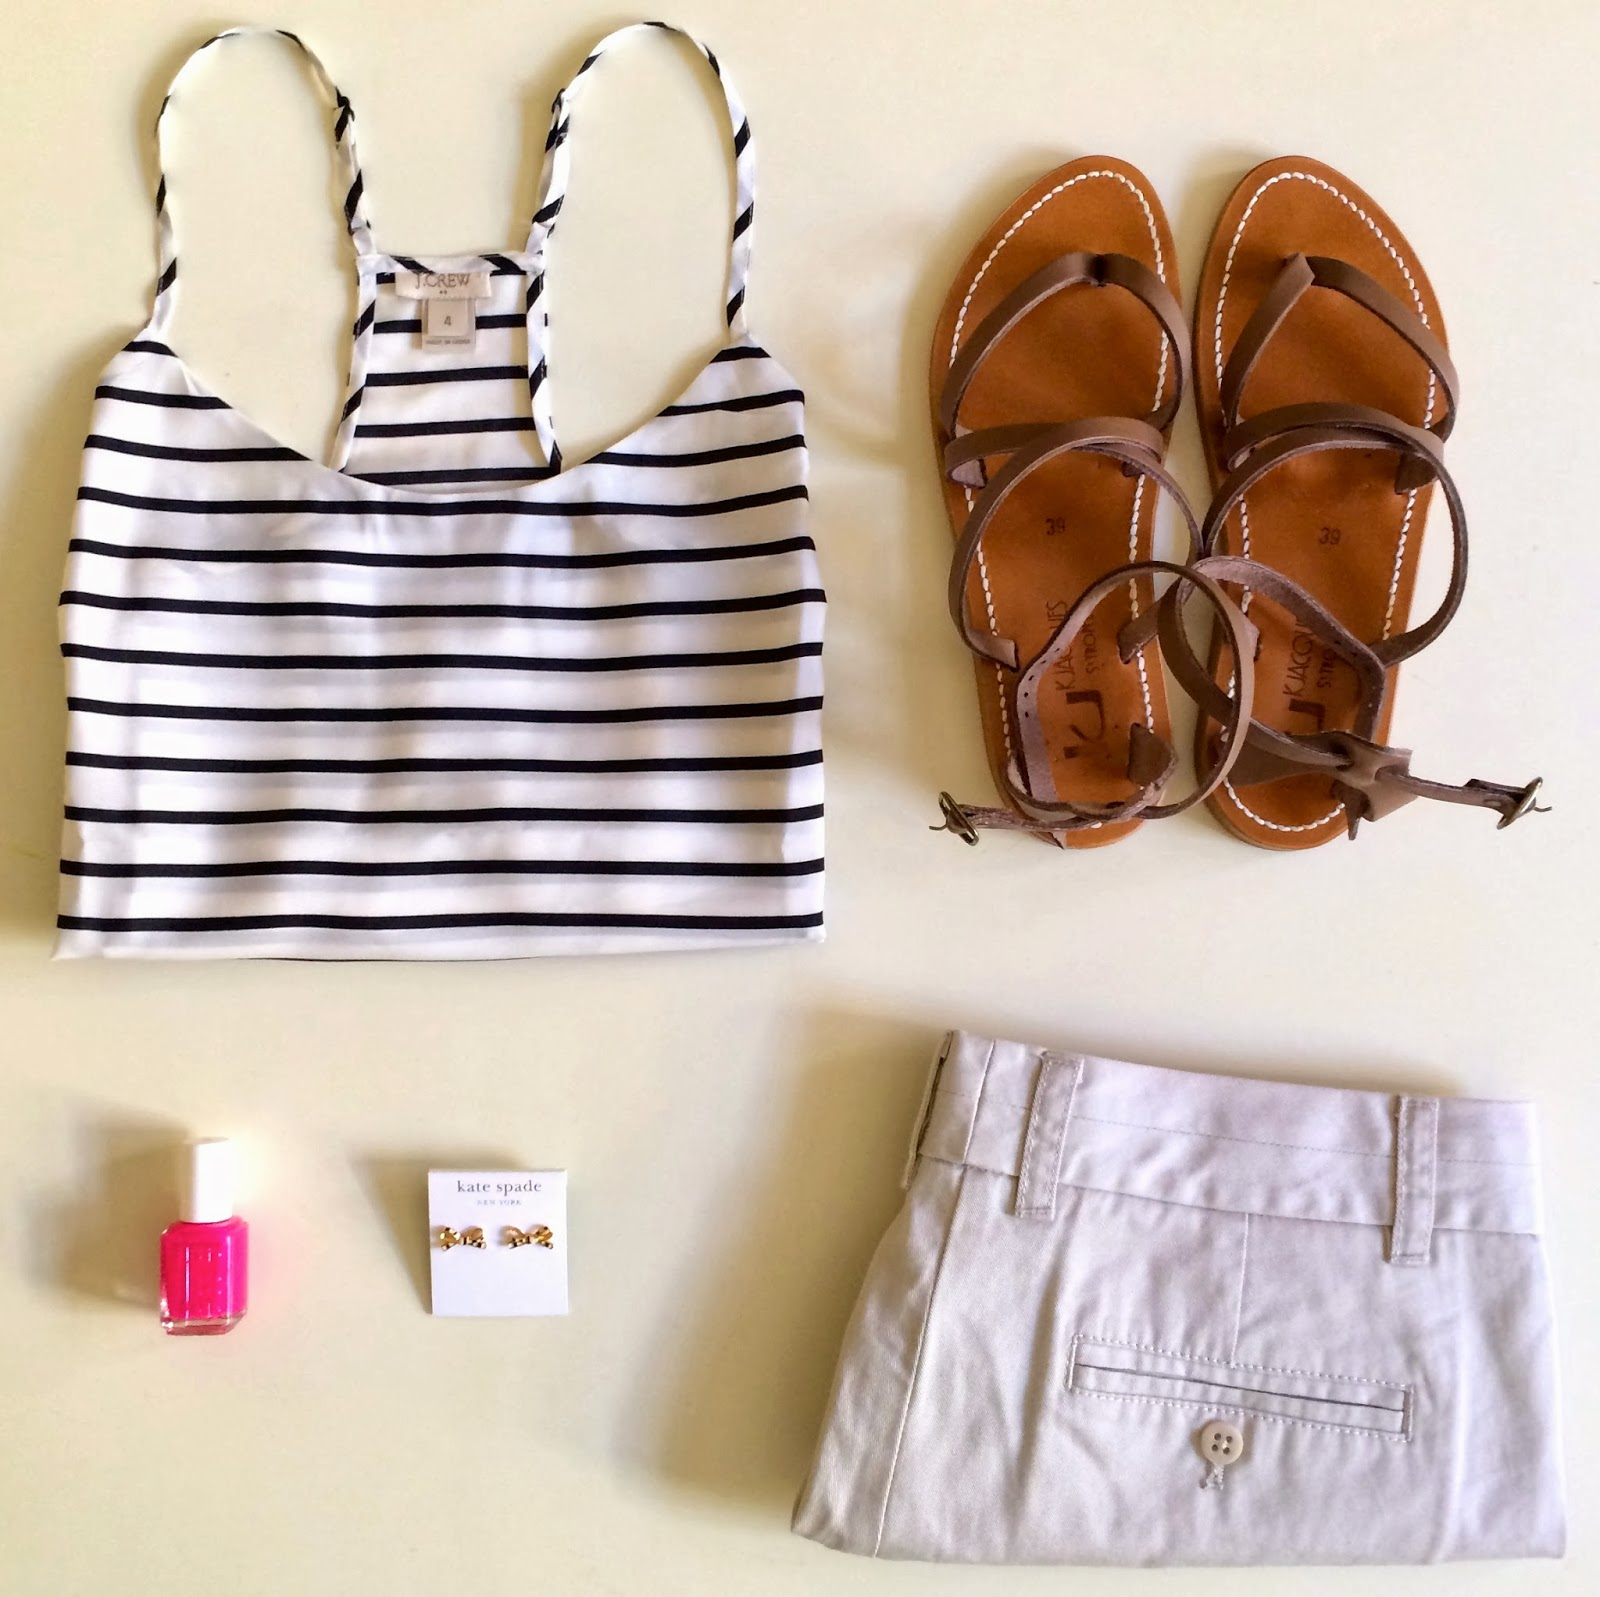 e0cec4091a11 J.Crew Factory Racerback Stripe Top    K. Jaques Epicure Sandals (I wear an  8.5 in most Tory Burch and Jack Rogers